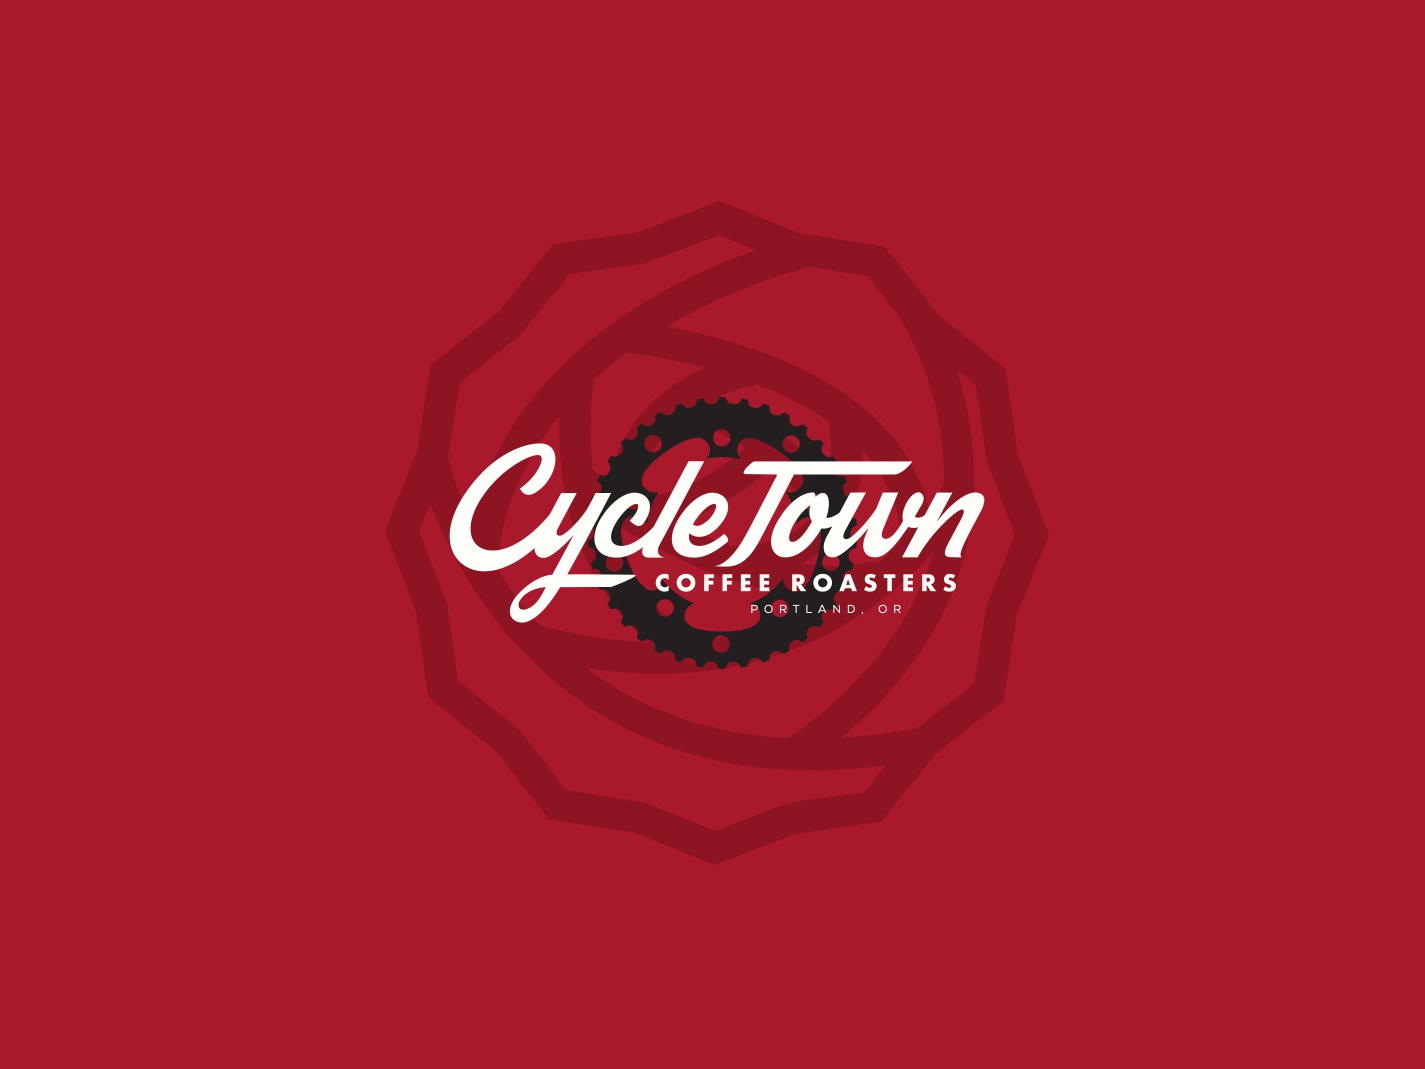 Cycletown Case Study icon branding package design logo design graphic  design branding design